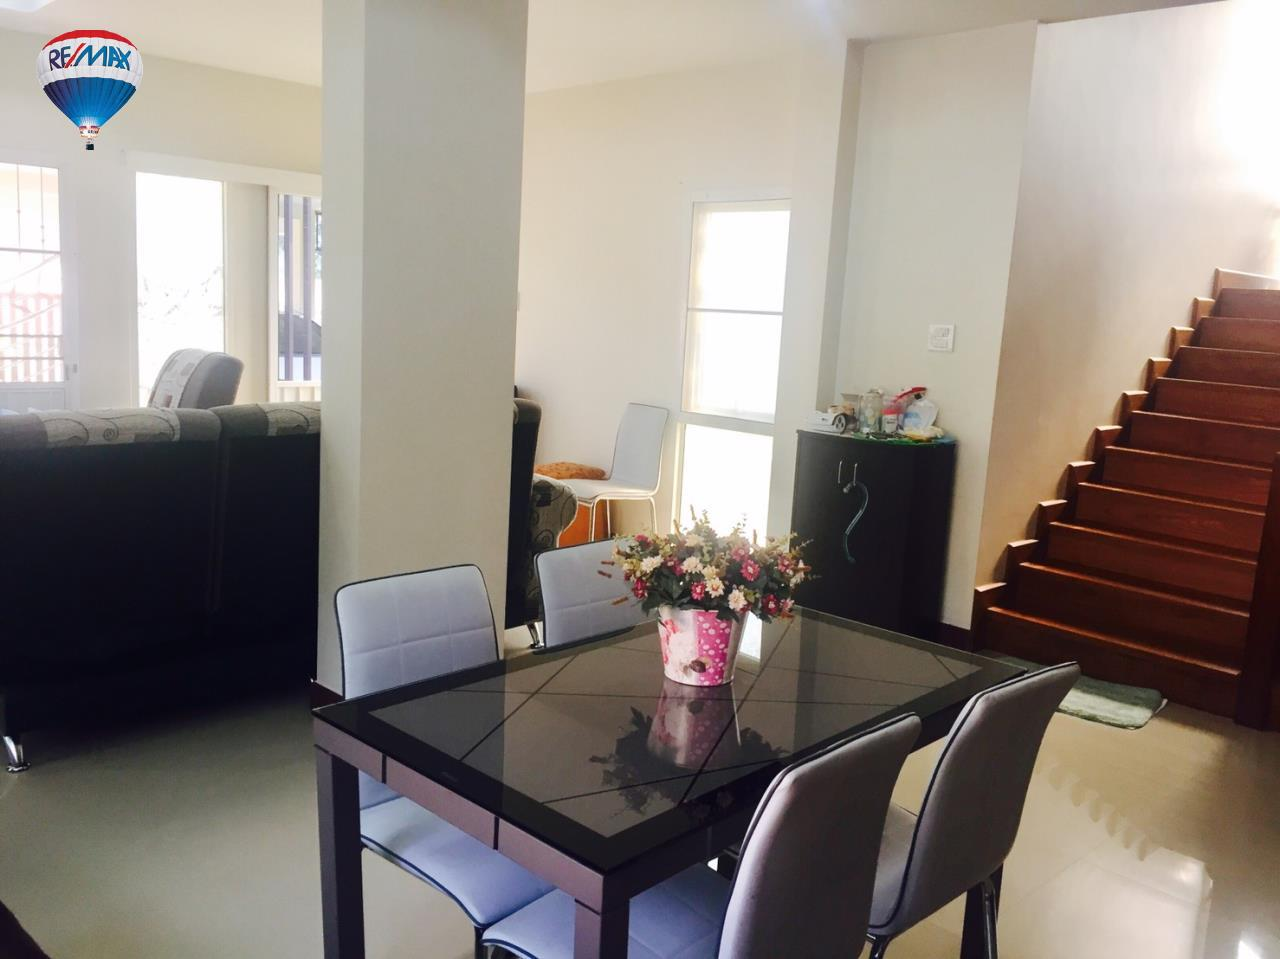 RE/MAX Classic Agency's house for sale near Pattaya Noi Chiangrai  18